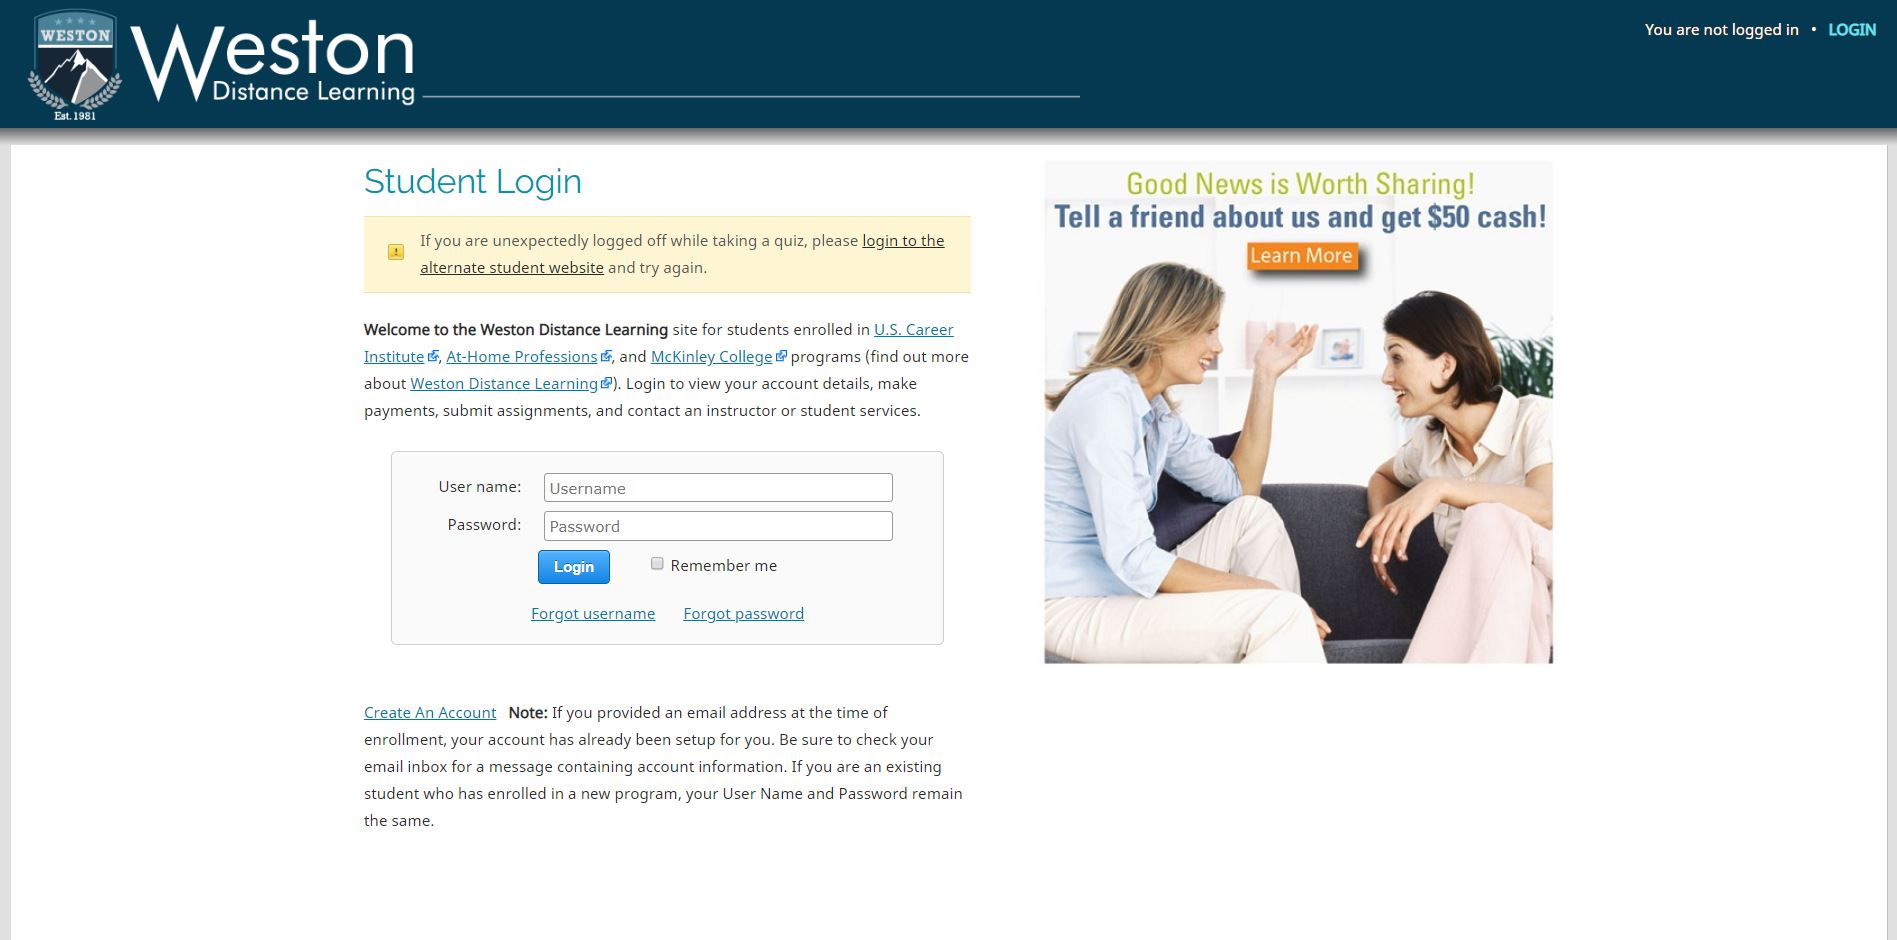 US Career Institute Student Login